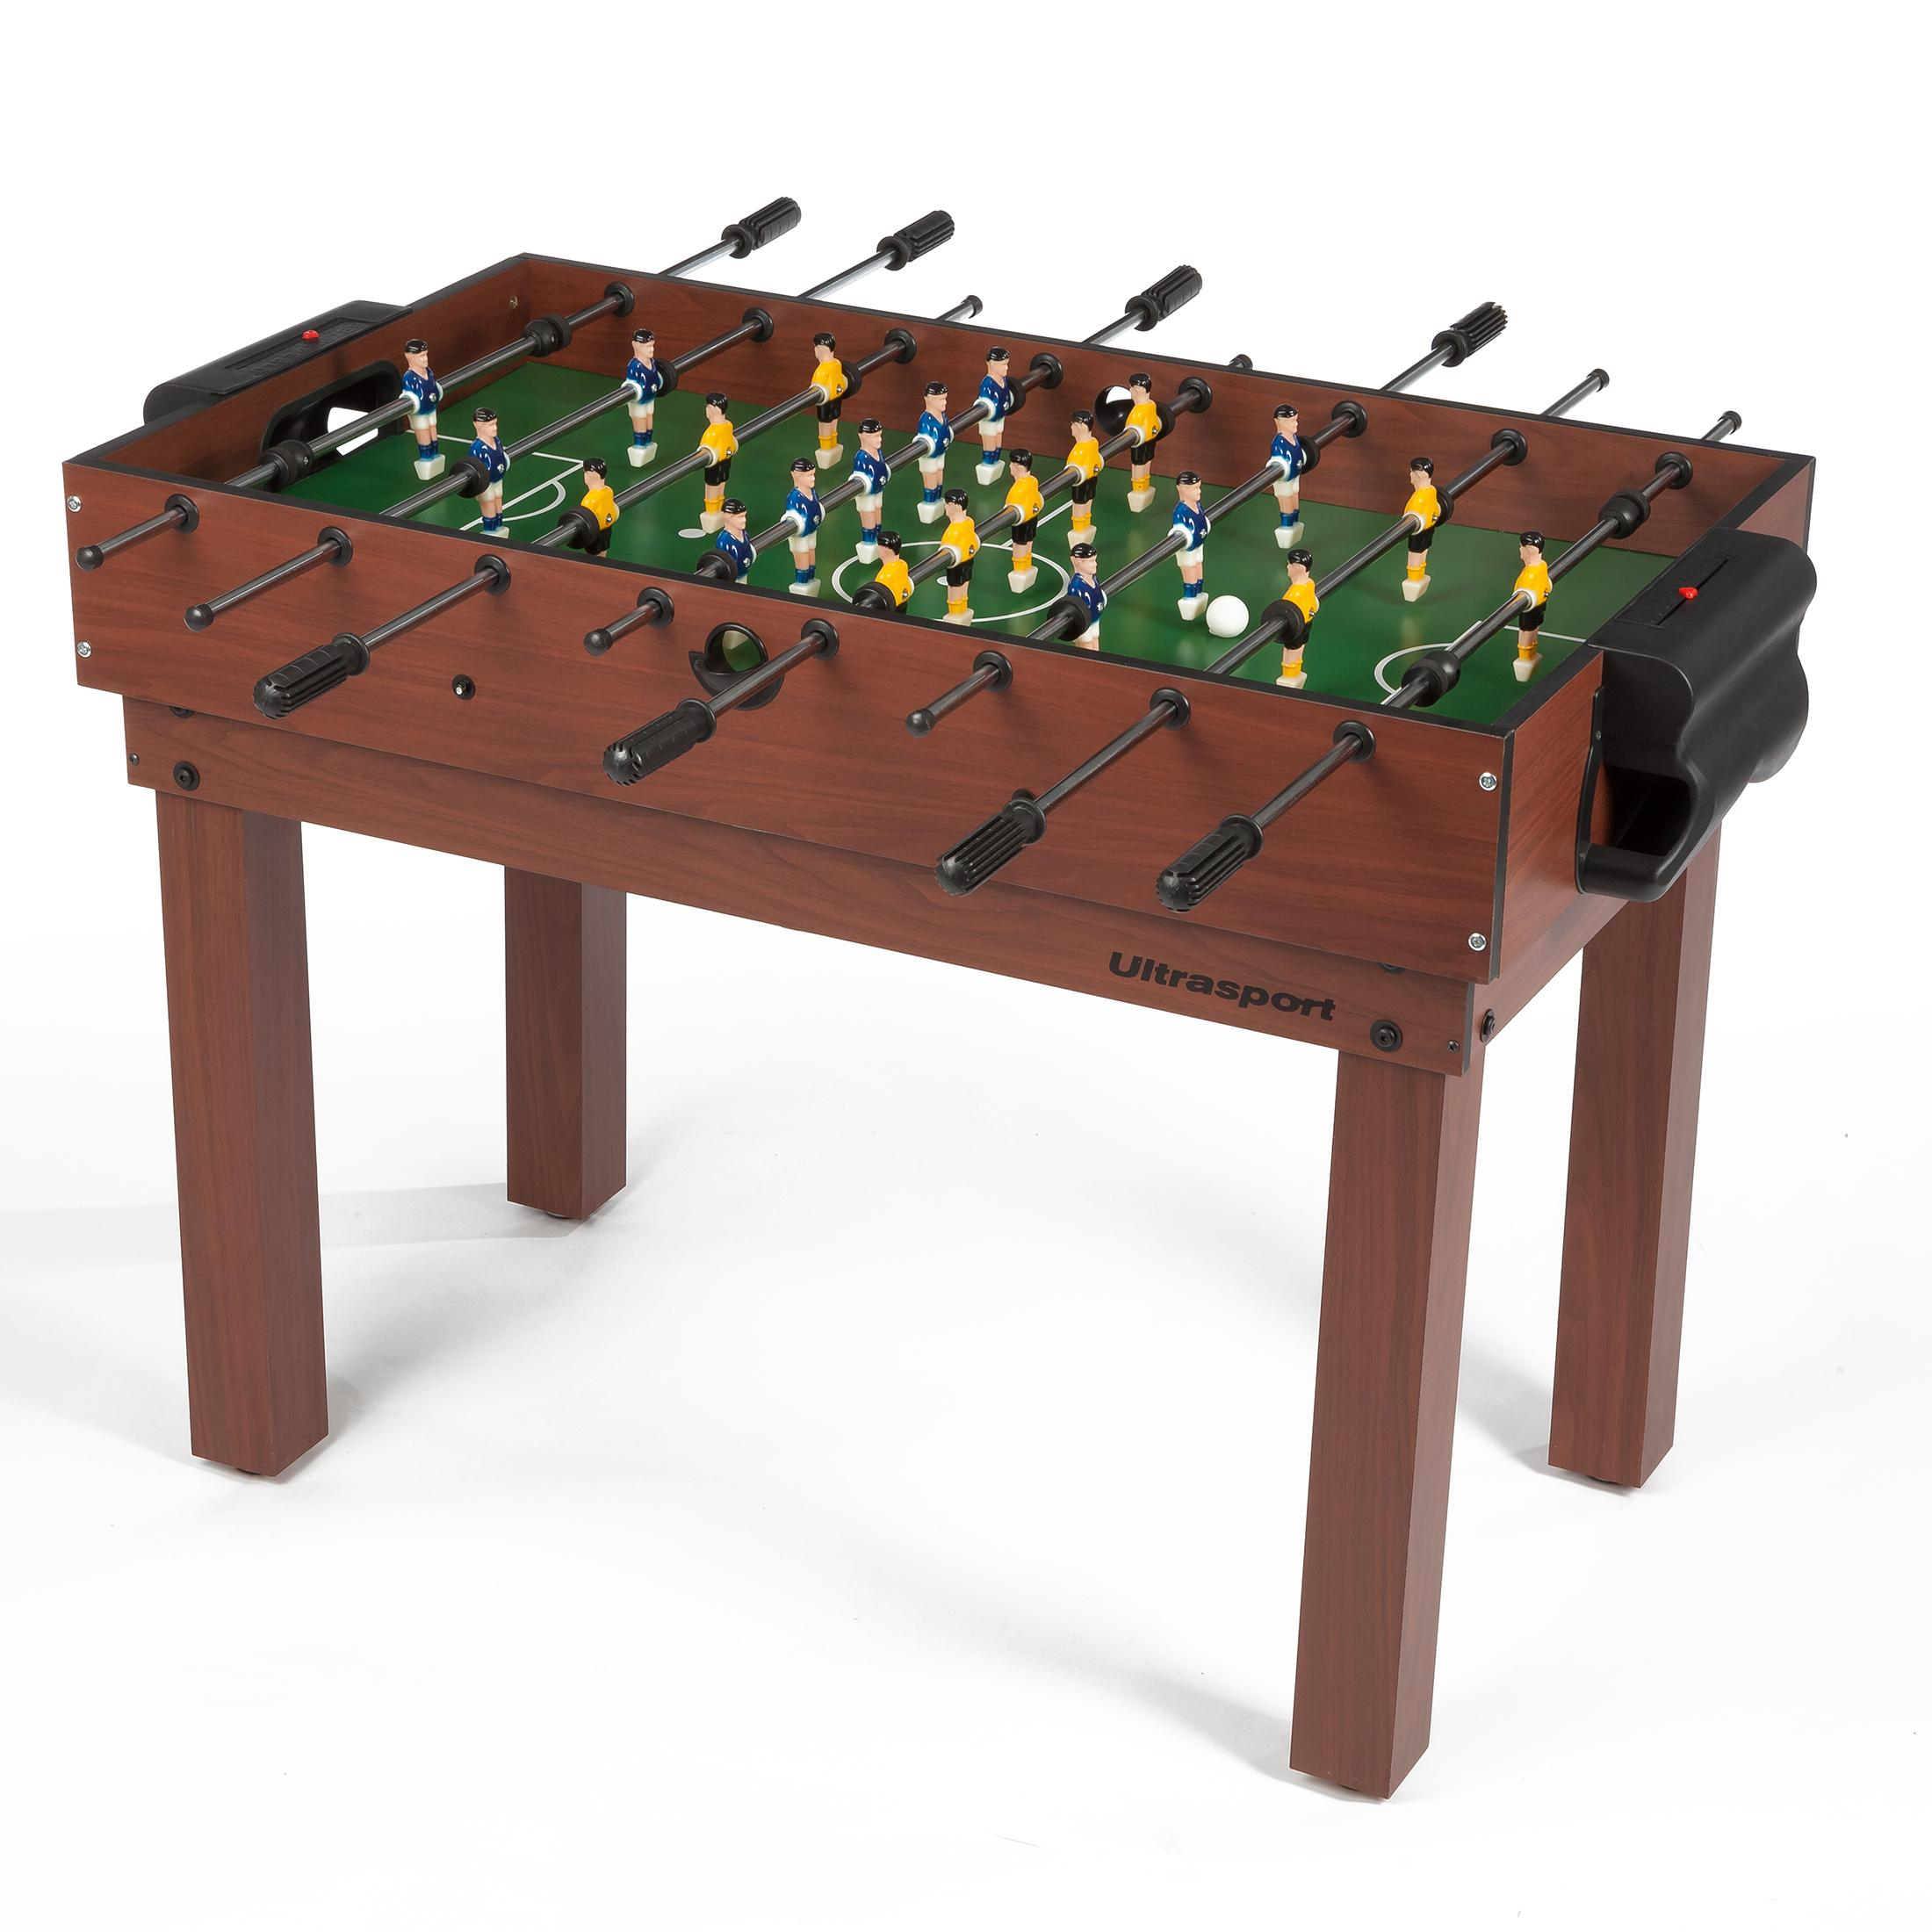 ultrasport spieltisch 12 in 1 game zone kinder spieltisch mit tischfu ball billard schach und. Black Bedroom Furniture Sets. Home Design Ideas